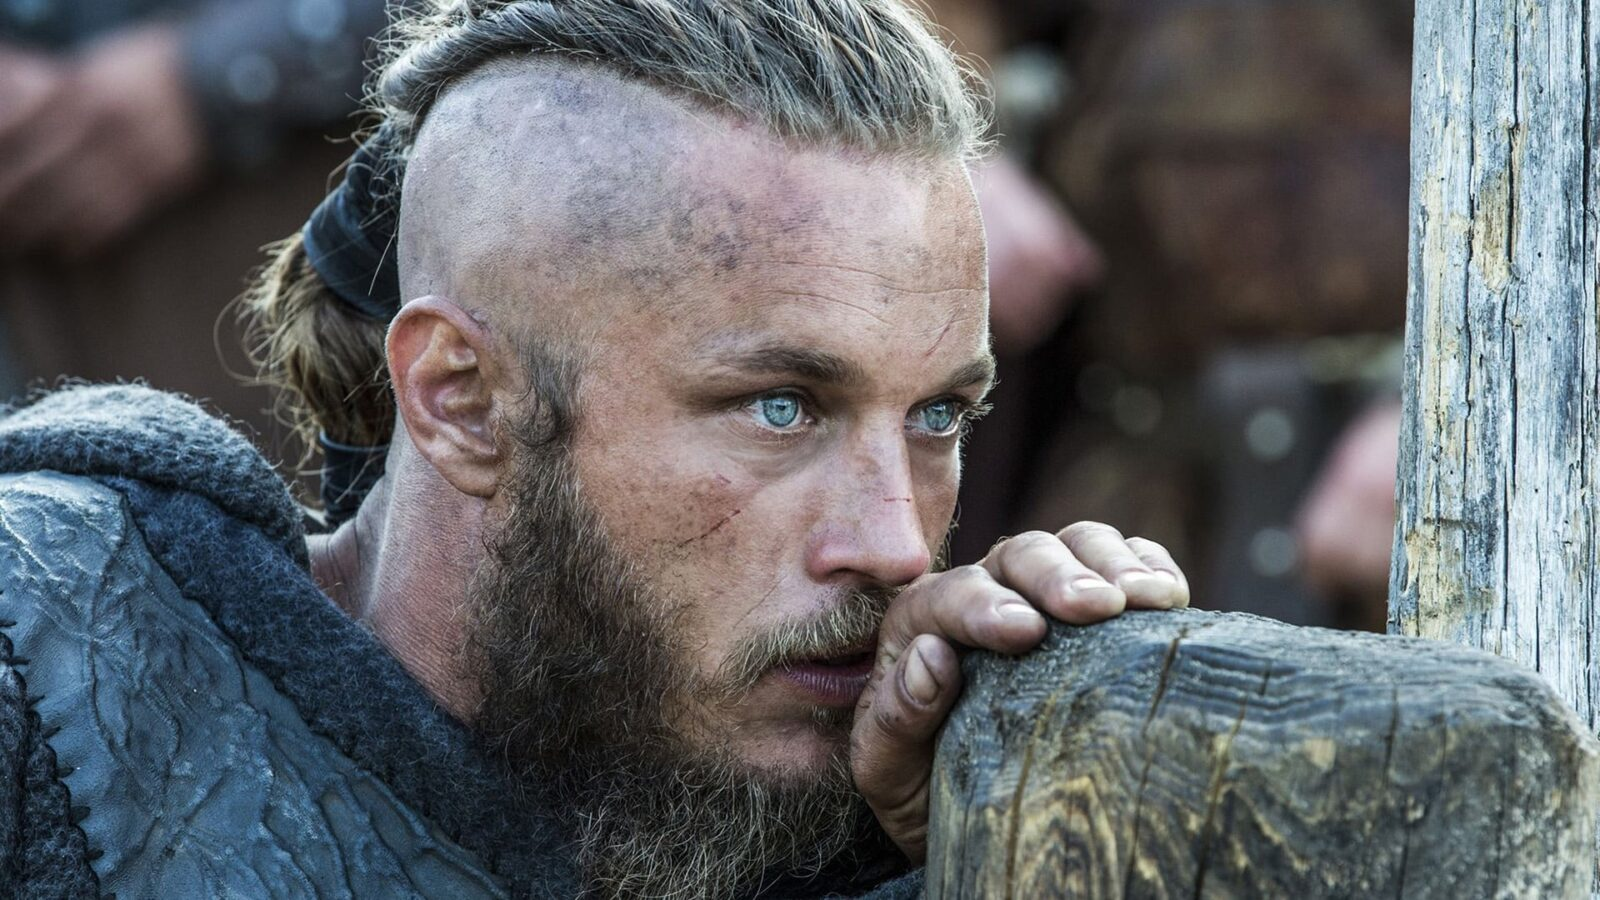 13 Travis Fimmel As Ragnar Lothbrok Hd Wallpapers For Desktop